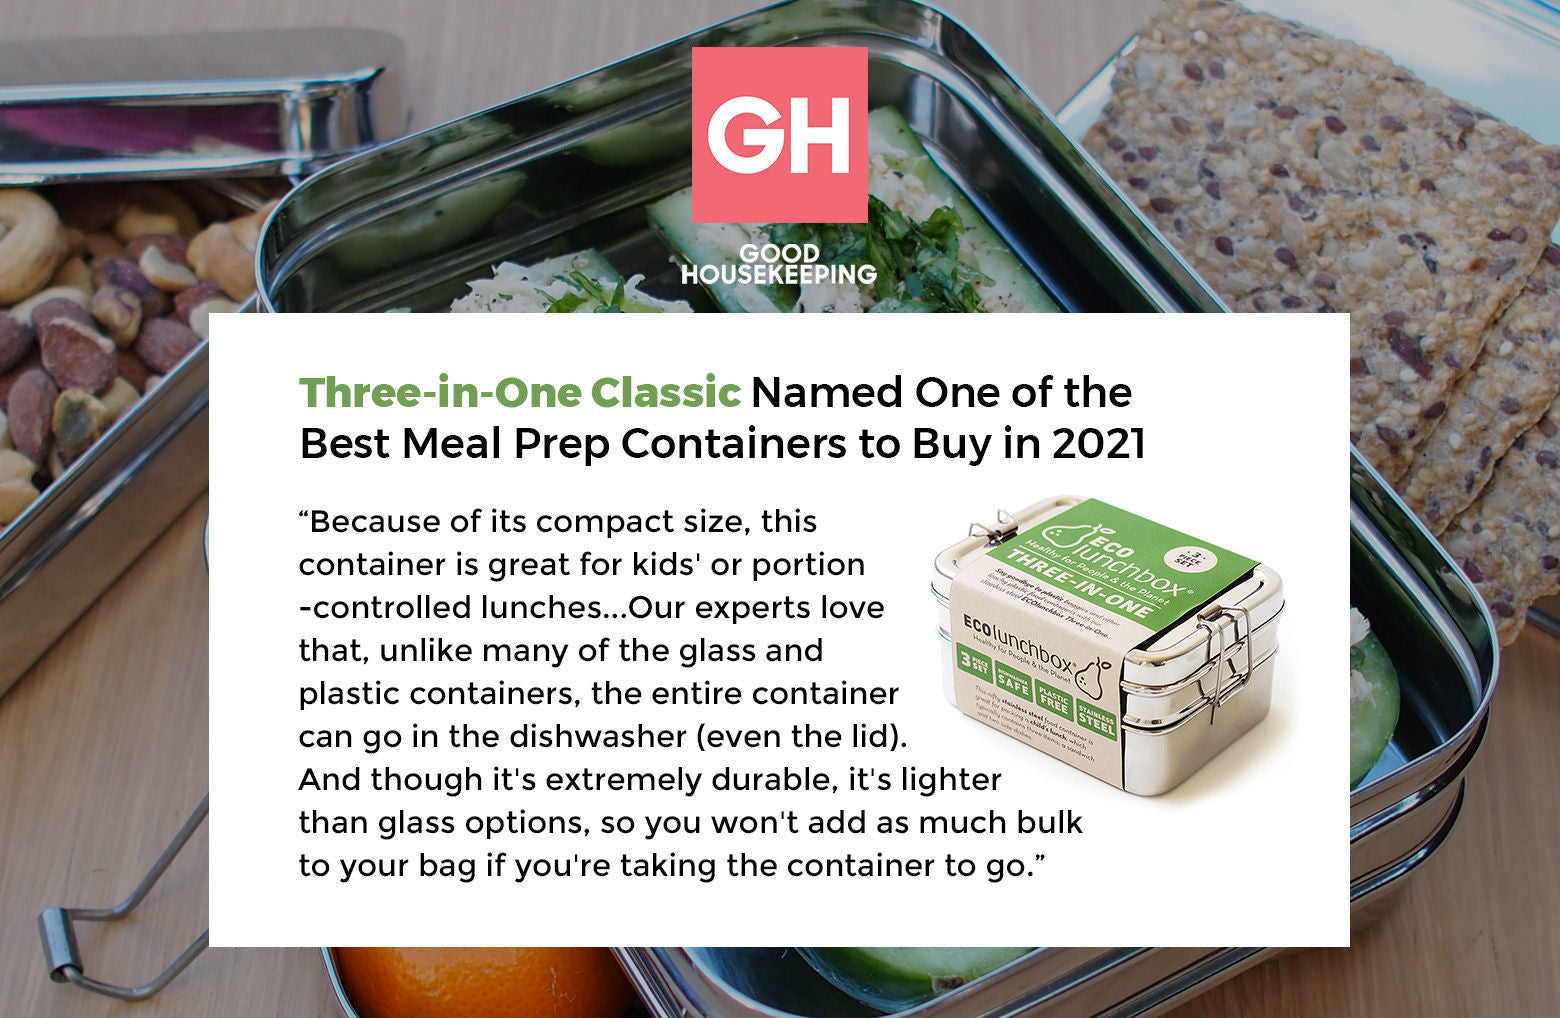 Good Housekeeping snippet featuring the Three-in-One Classic ECOlunchbox.